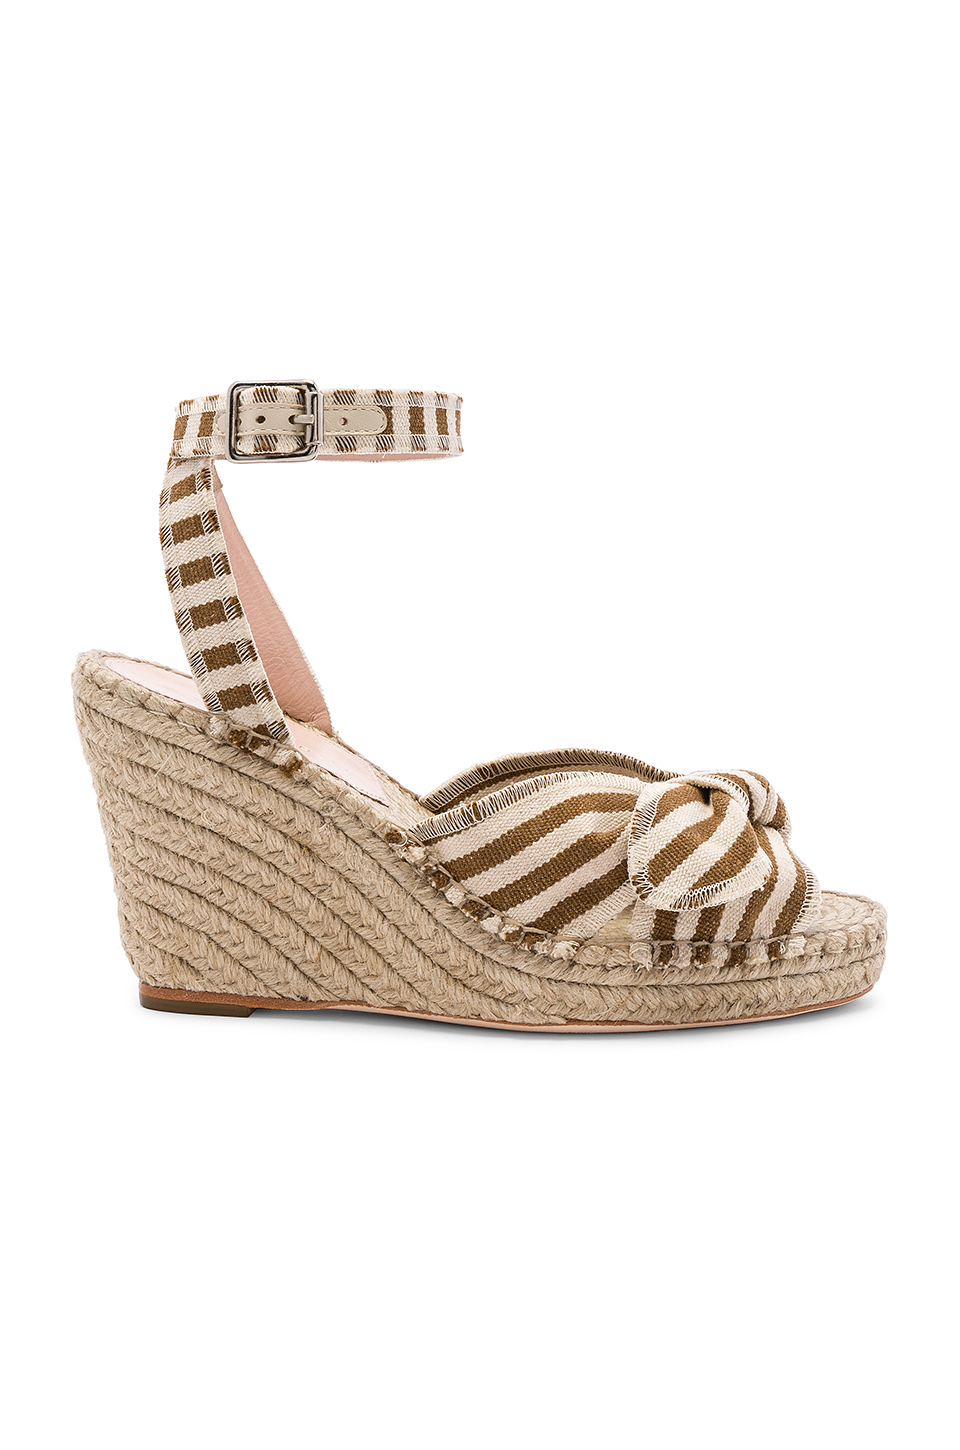 e2955574707 Buy Original Loeffler Randall Bow Wedge Espadrille at Indonesia ...